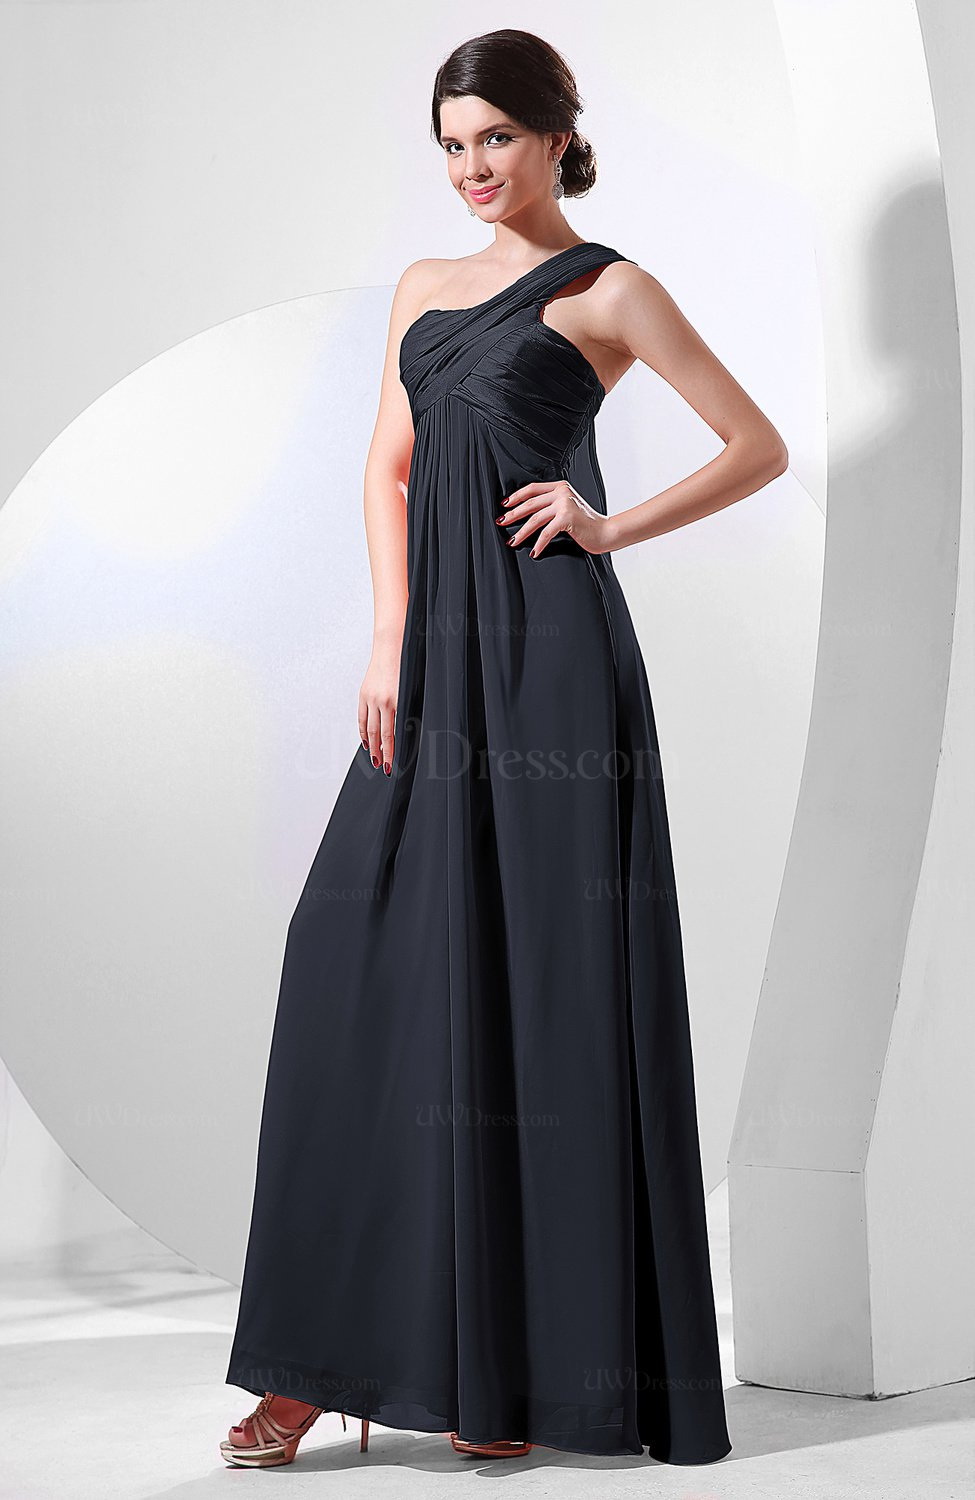 130f29f9a31 Navy Blue Elegant Empire One Shoulder Sleeveless Chiffon Bridesmaid Dresses  (Style D90601)